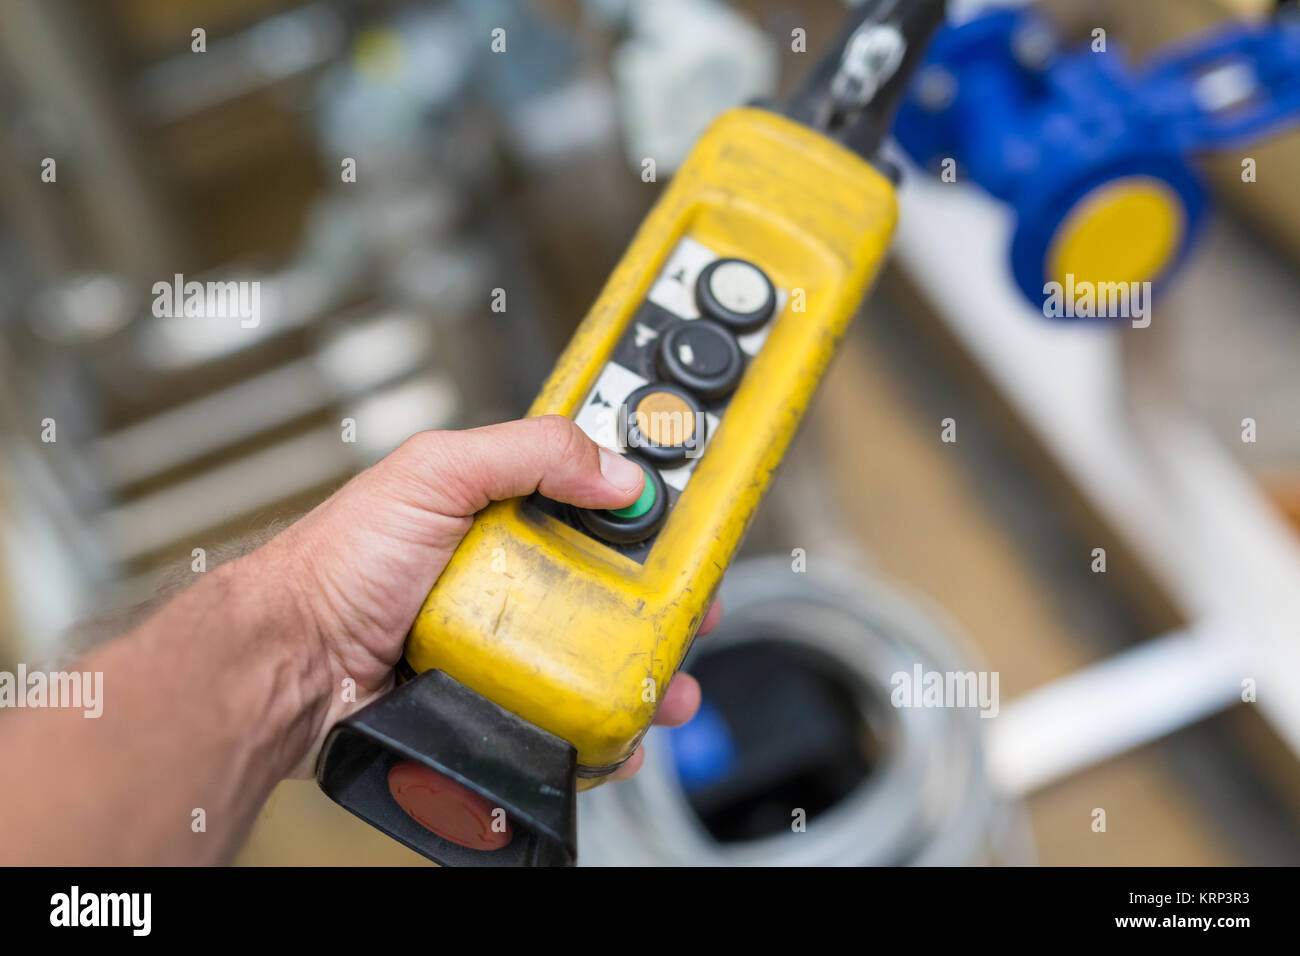 Industrial worker pushing on button of machinery controler. - Stock Image